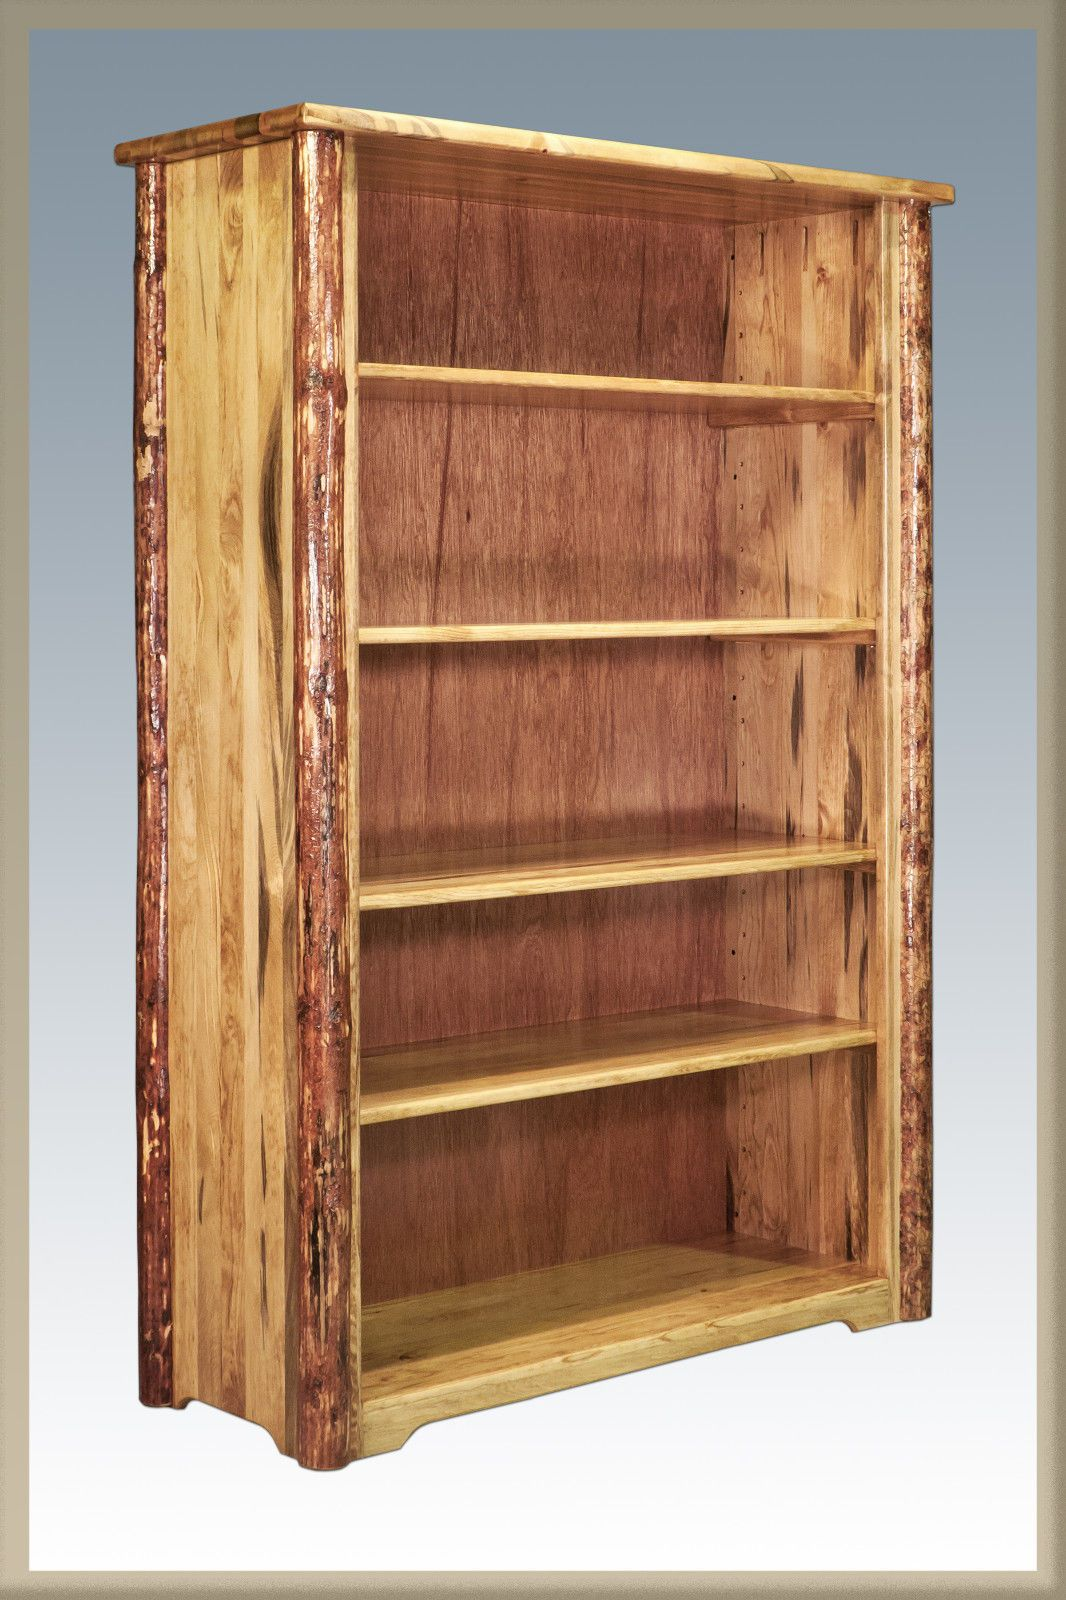 Rustic Log Bookcases Wood Book Case Solid Pine Shelf Amish Made Cabin Ebay Bookcase Wood Bookcase Adjustable Shelving